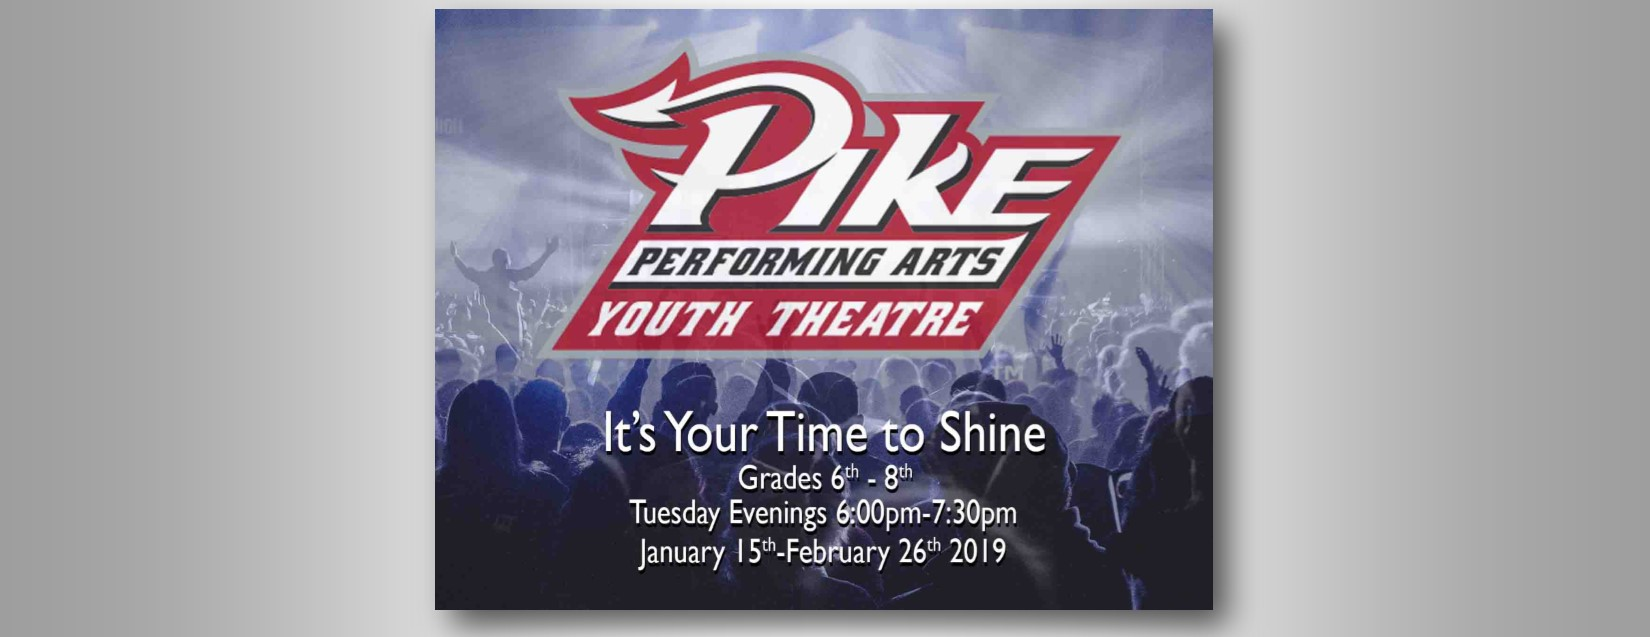 Pike Youth Theatre 2018